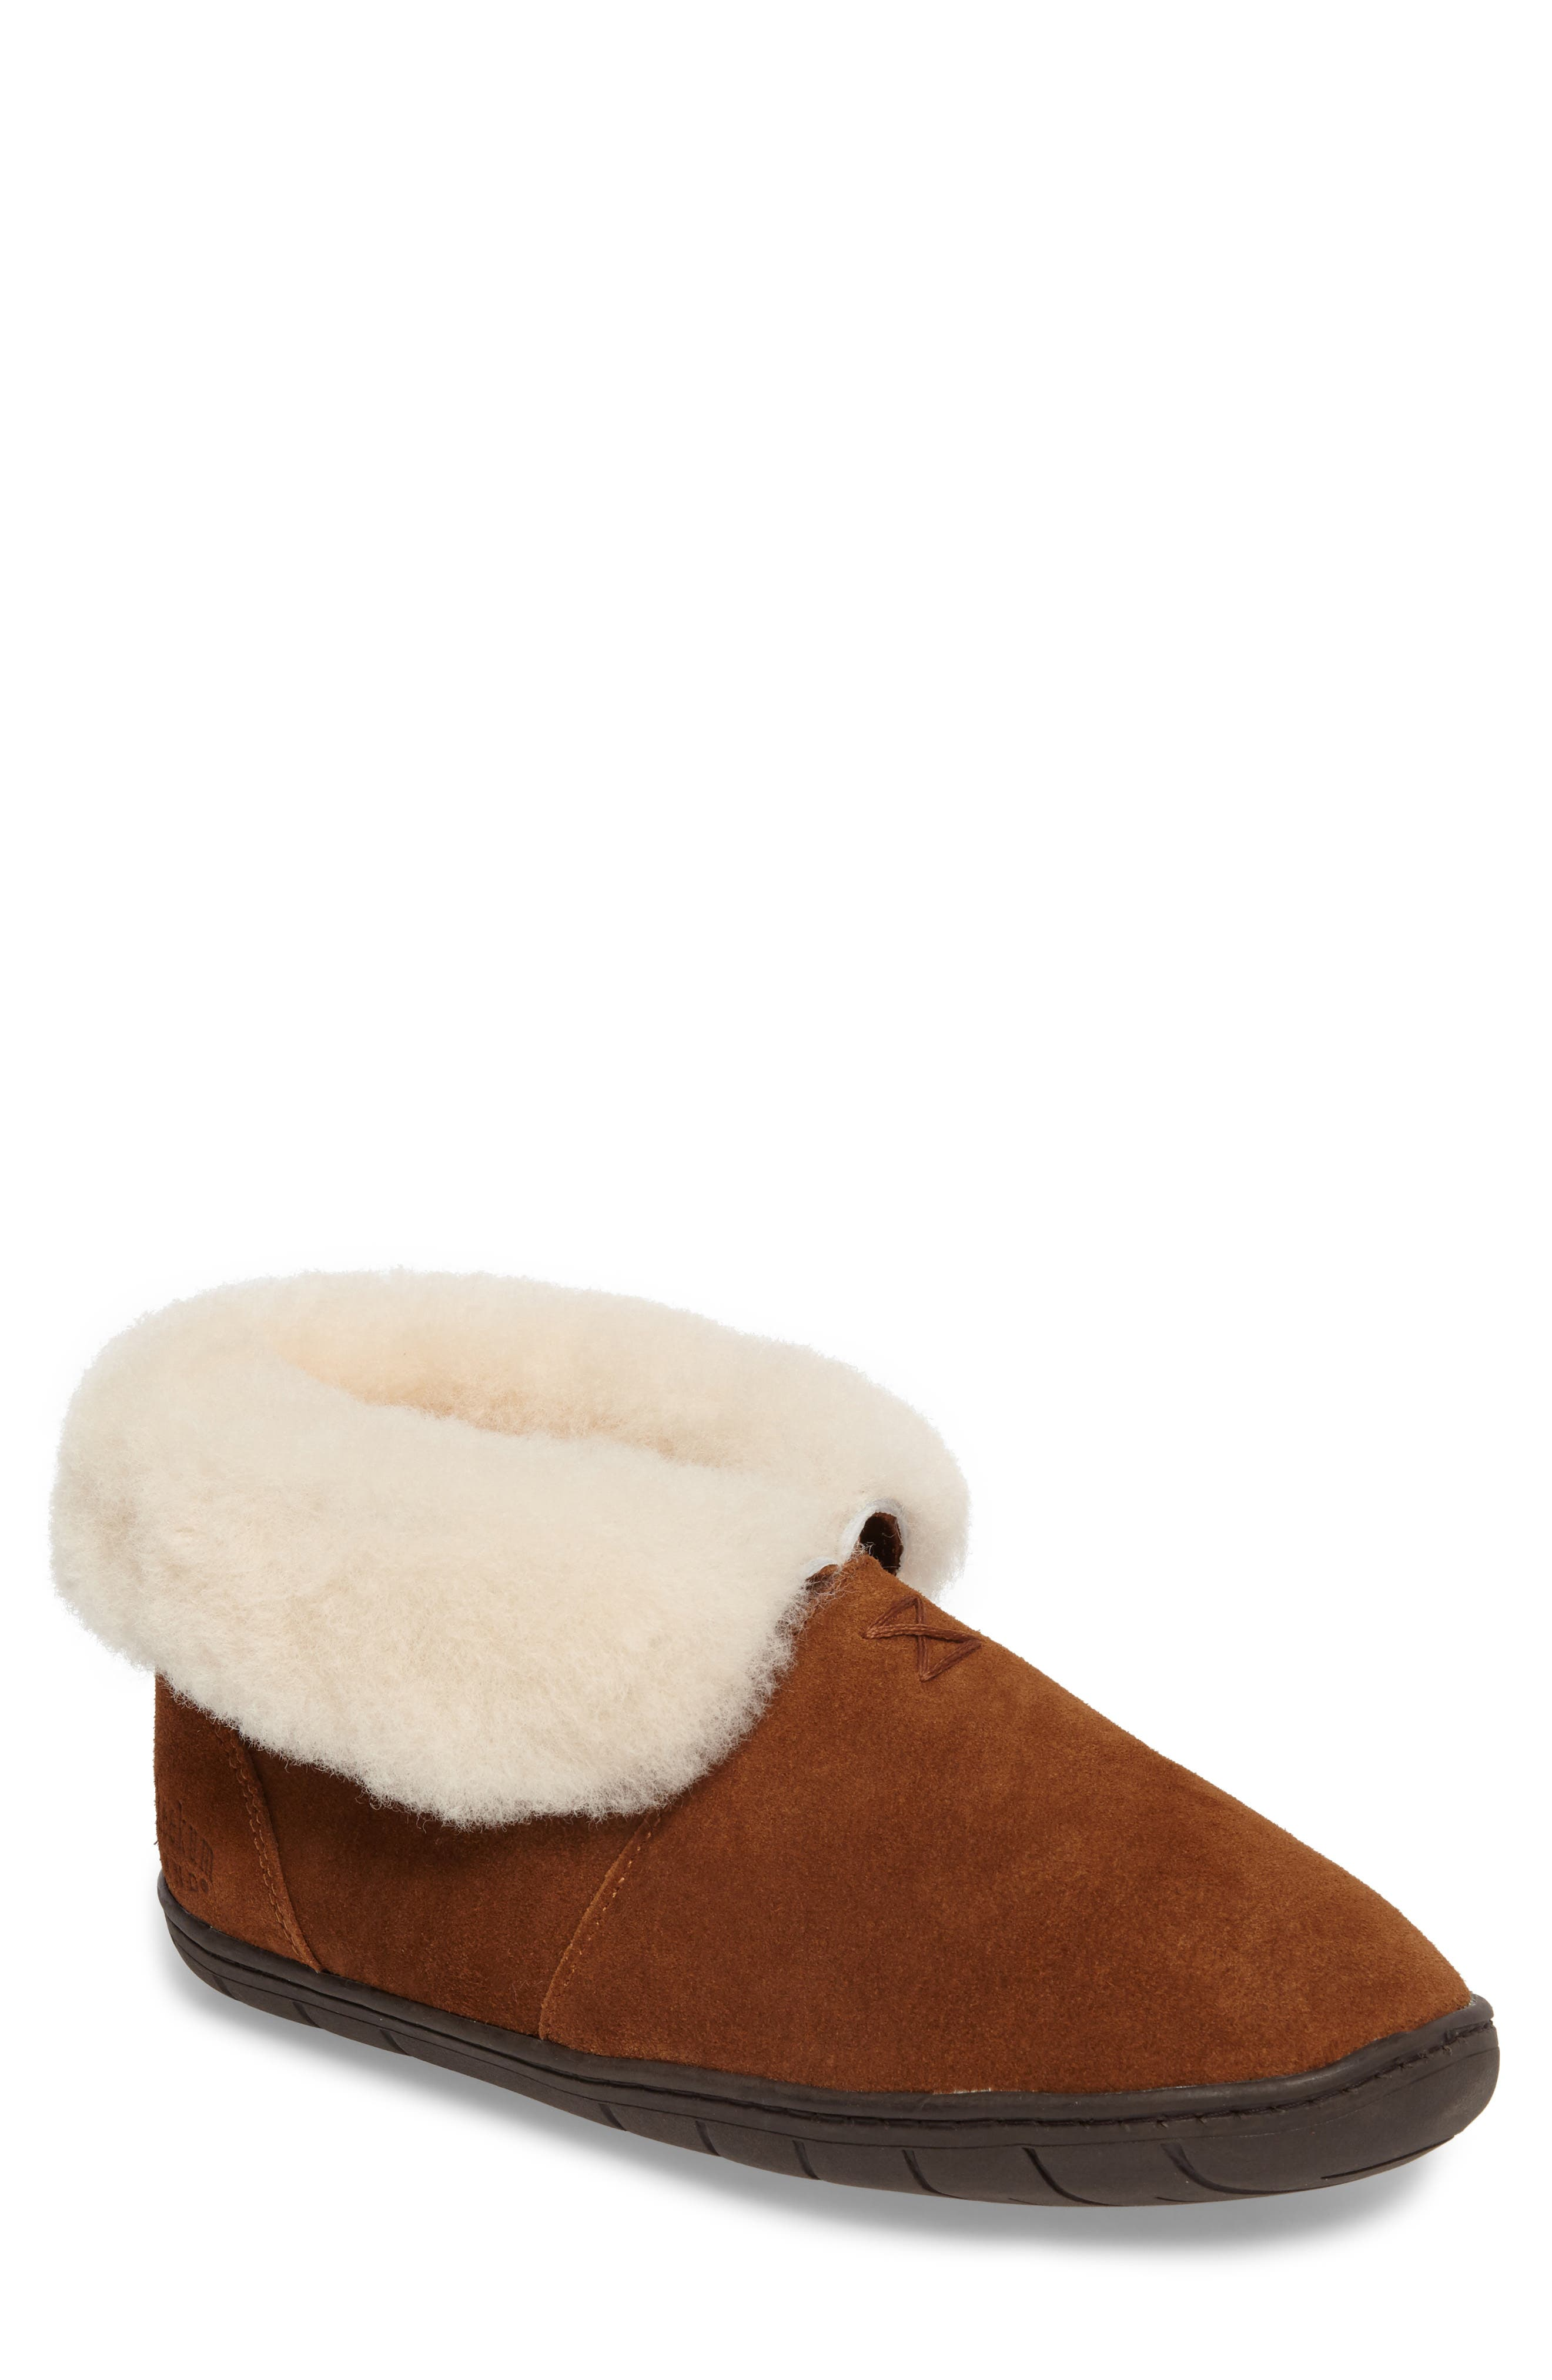 Main Image - Staheekum Tundra Slipper Bootie with Genuine Shearling Lining (Men)